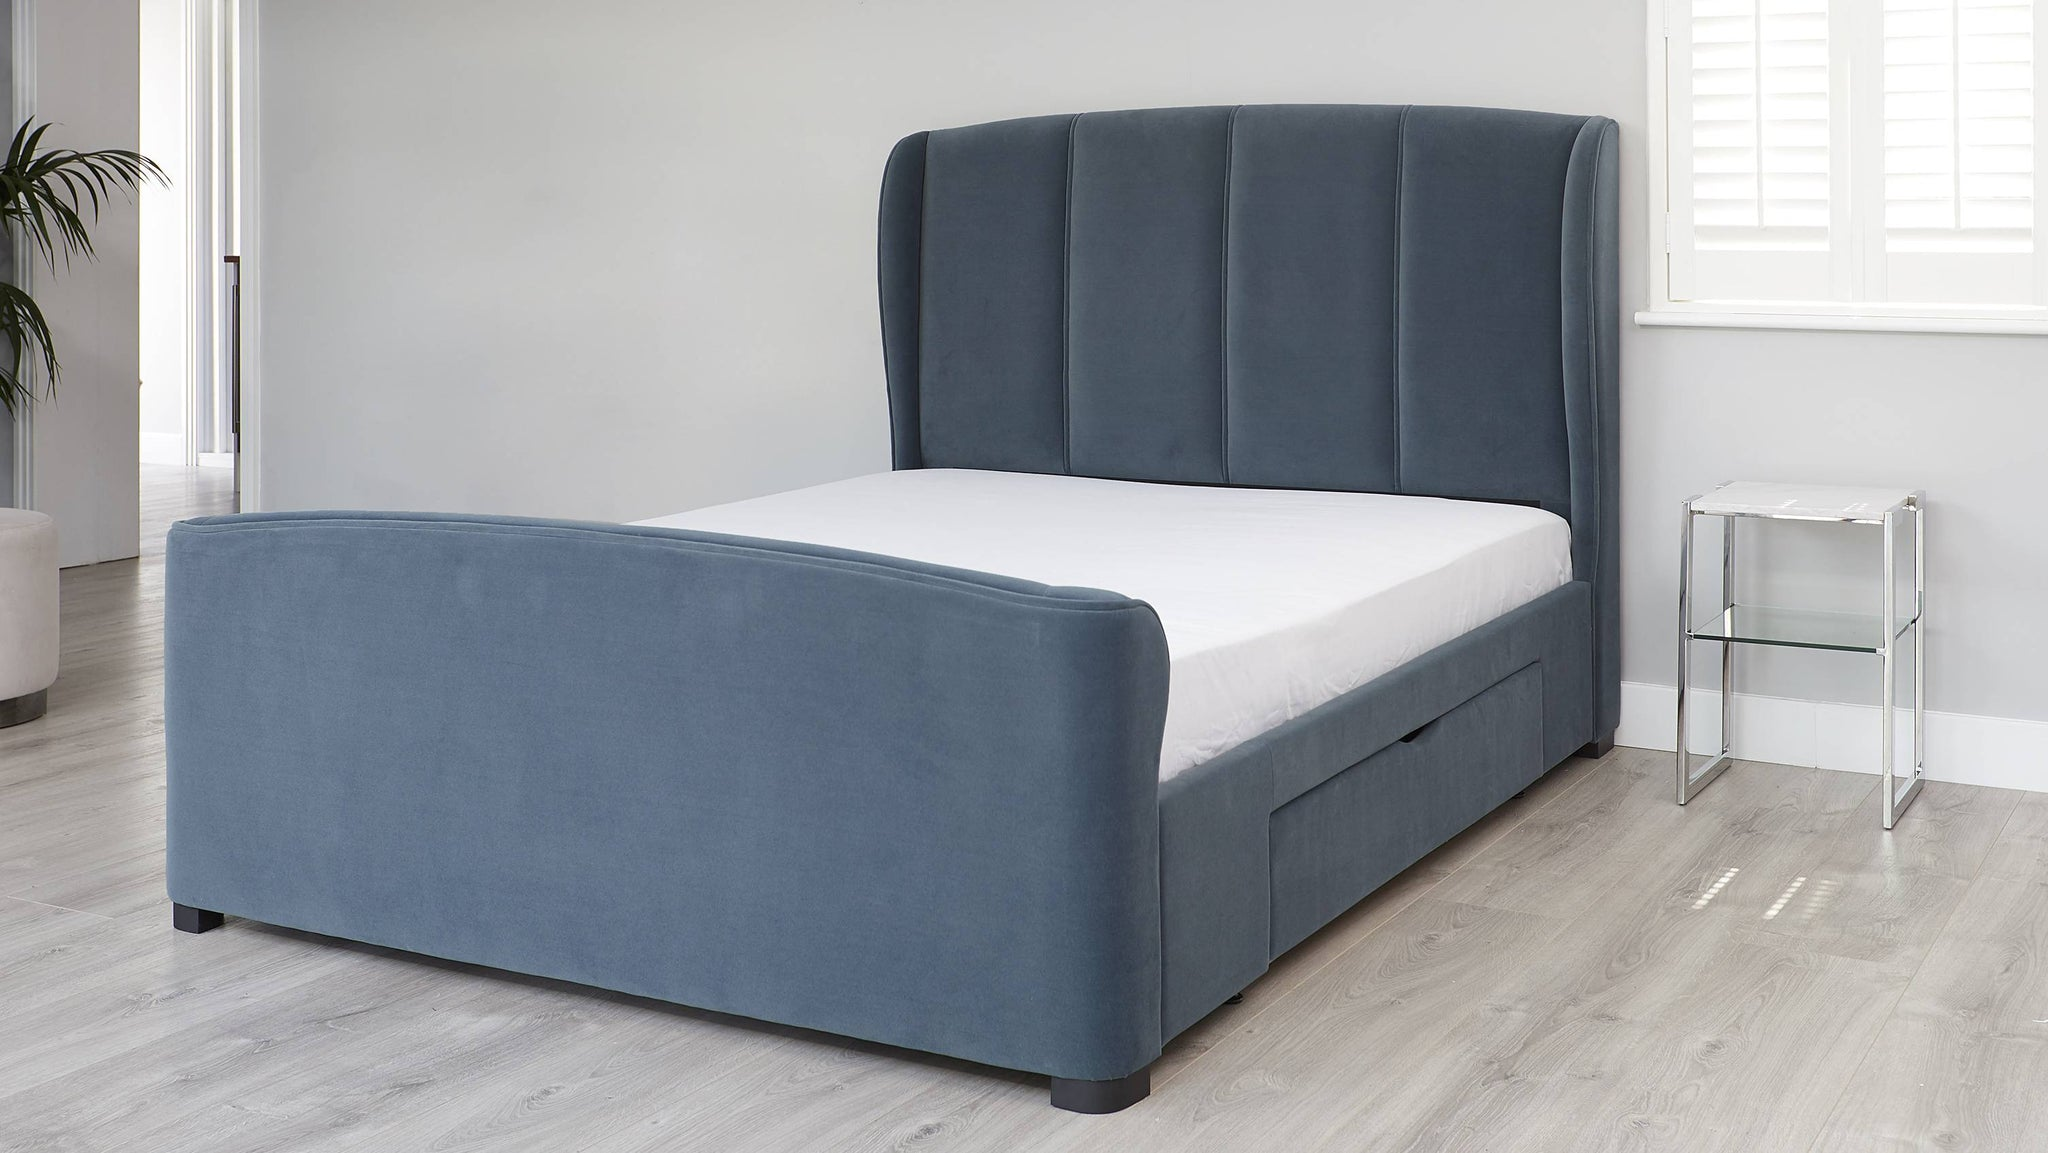 King size bed with drawers